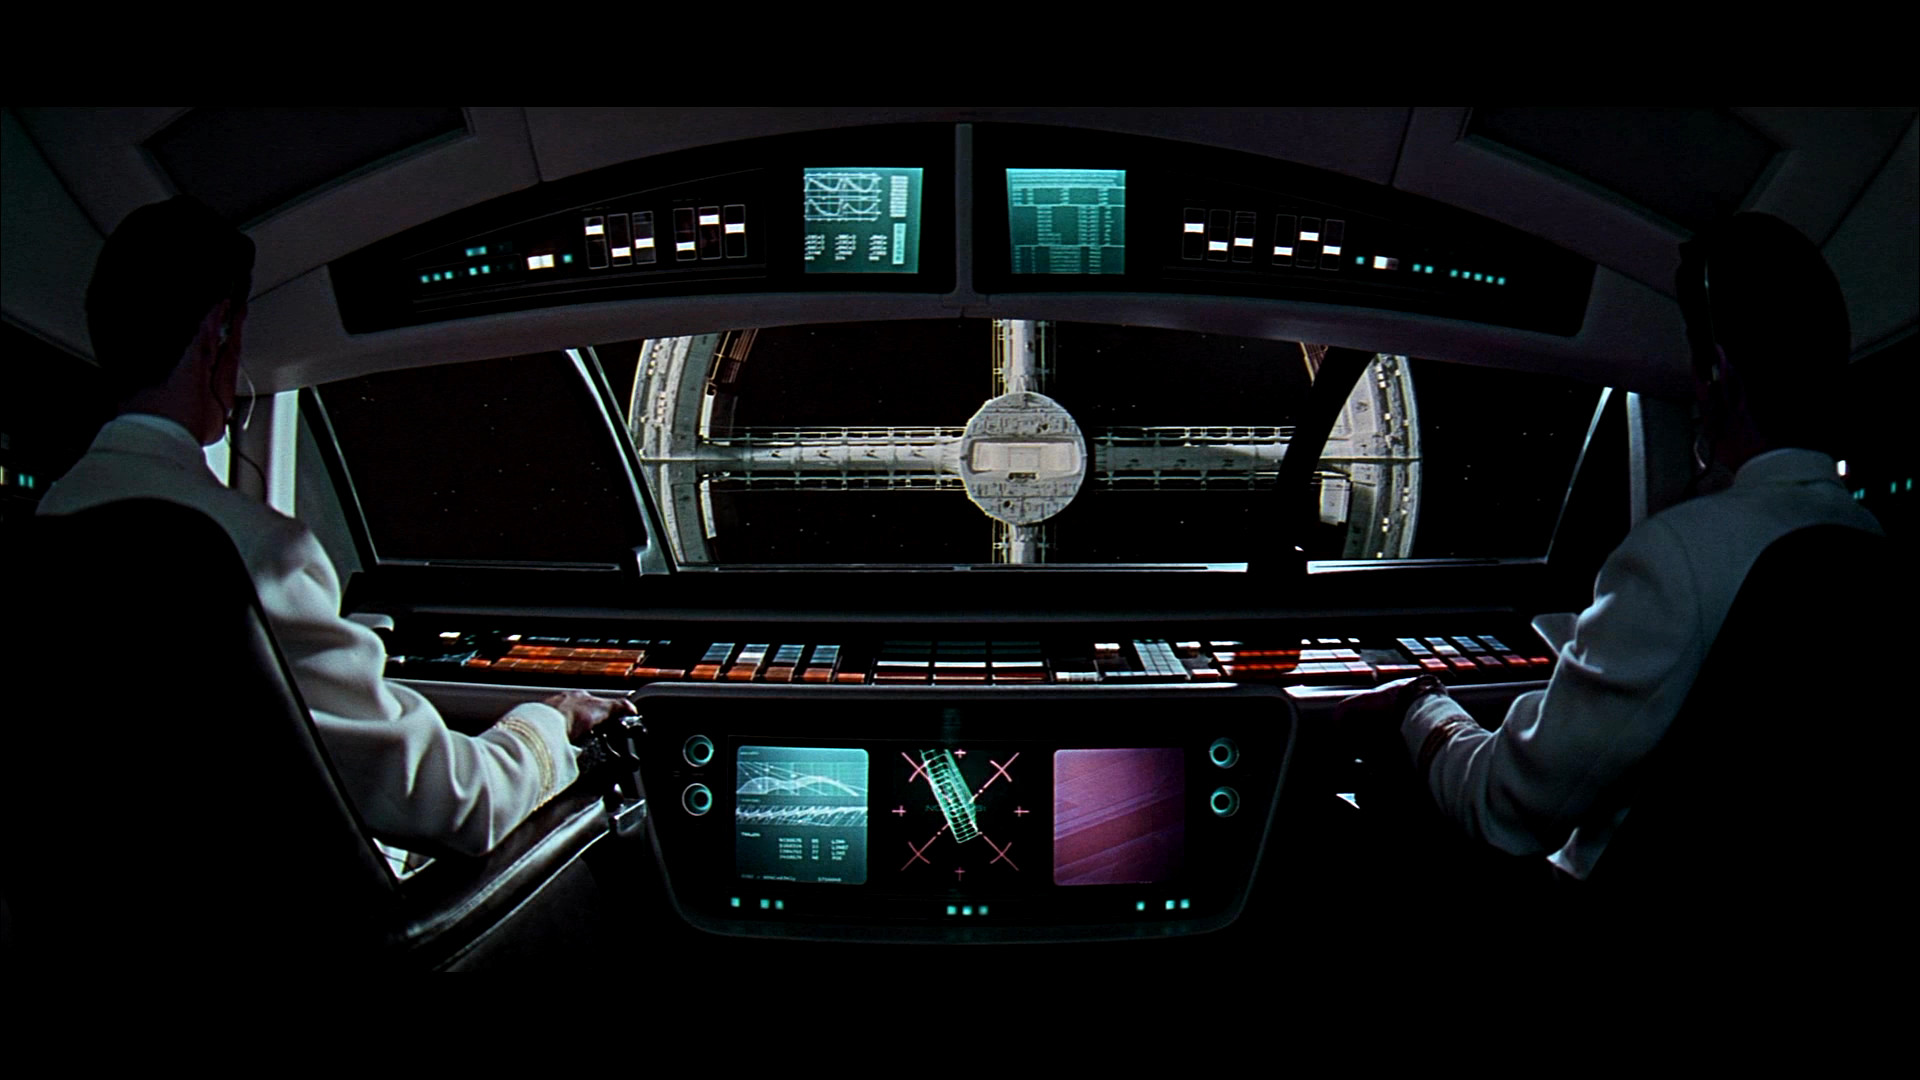 2001 a space odyssey wallpaper 76 images